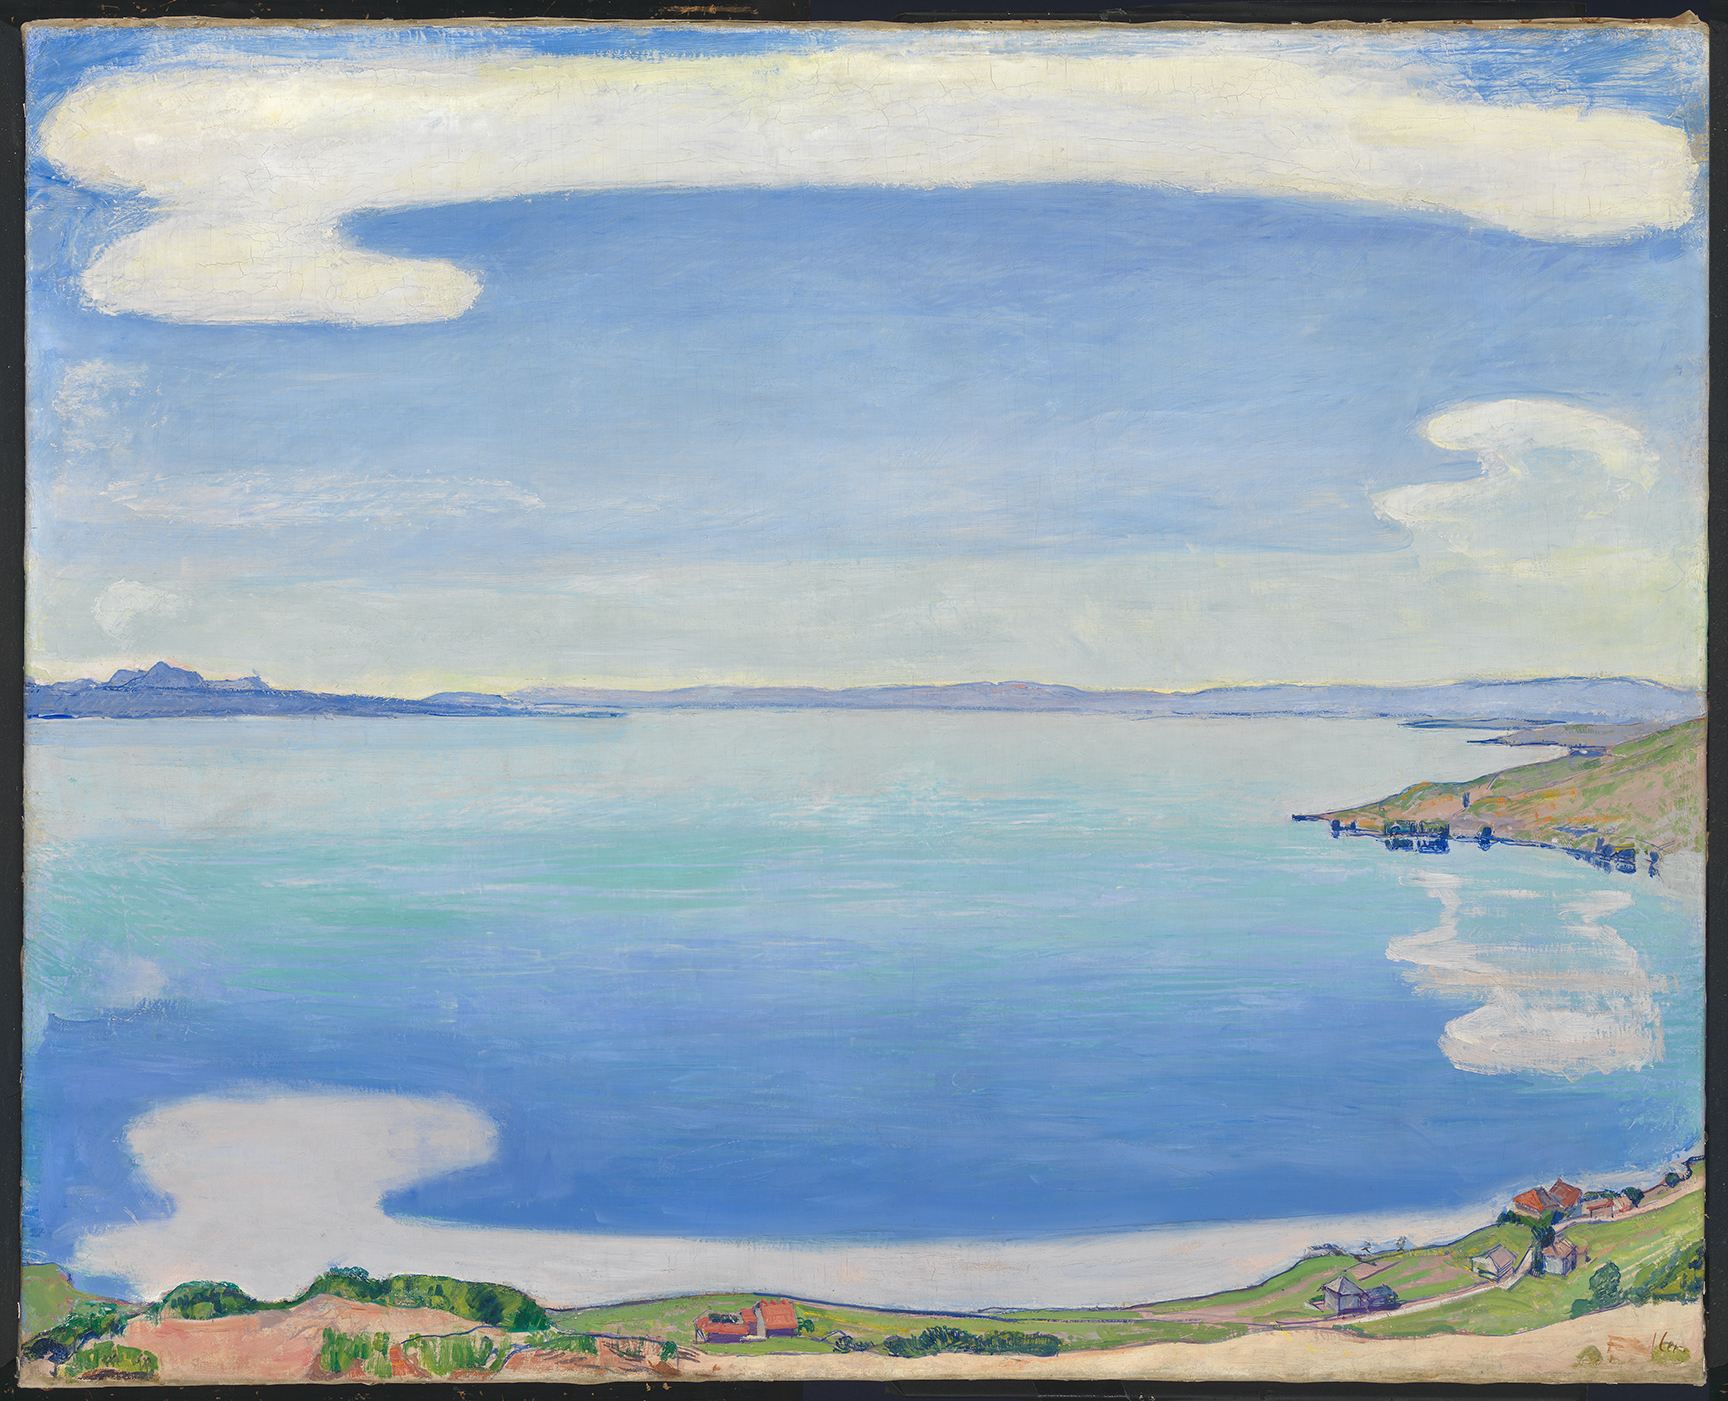 Ferdinand Hodler, Le Léman vu de Chexbres, vers 1904, huile sur toile, 81 x 100 cm, collection Christoph Blocher © SIK-ISEA, Zurich / Photo : Philipp Hitz